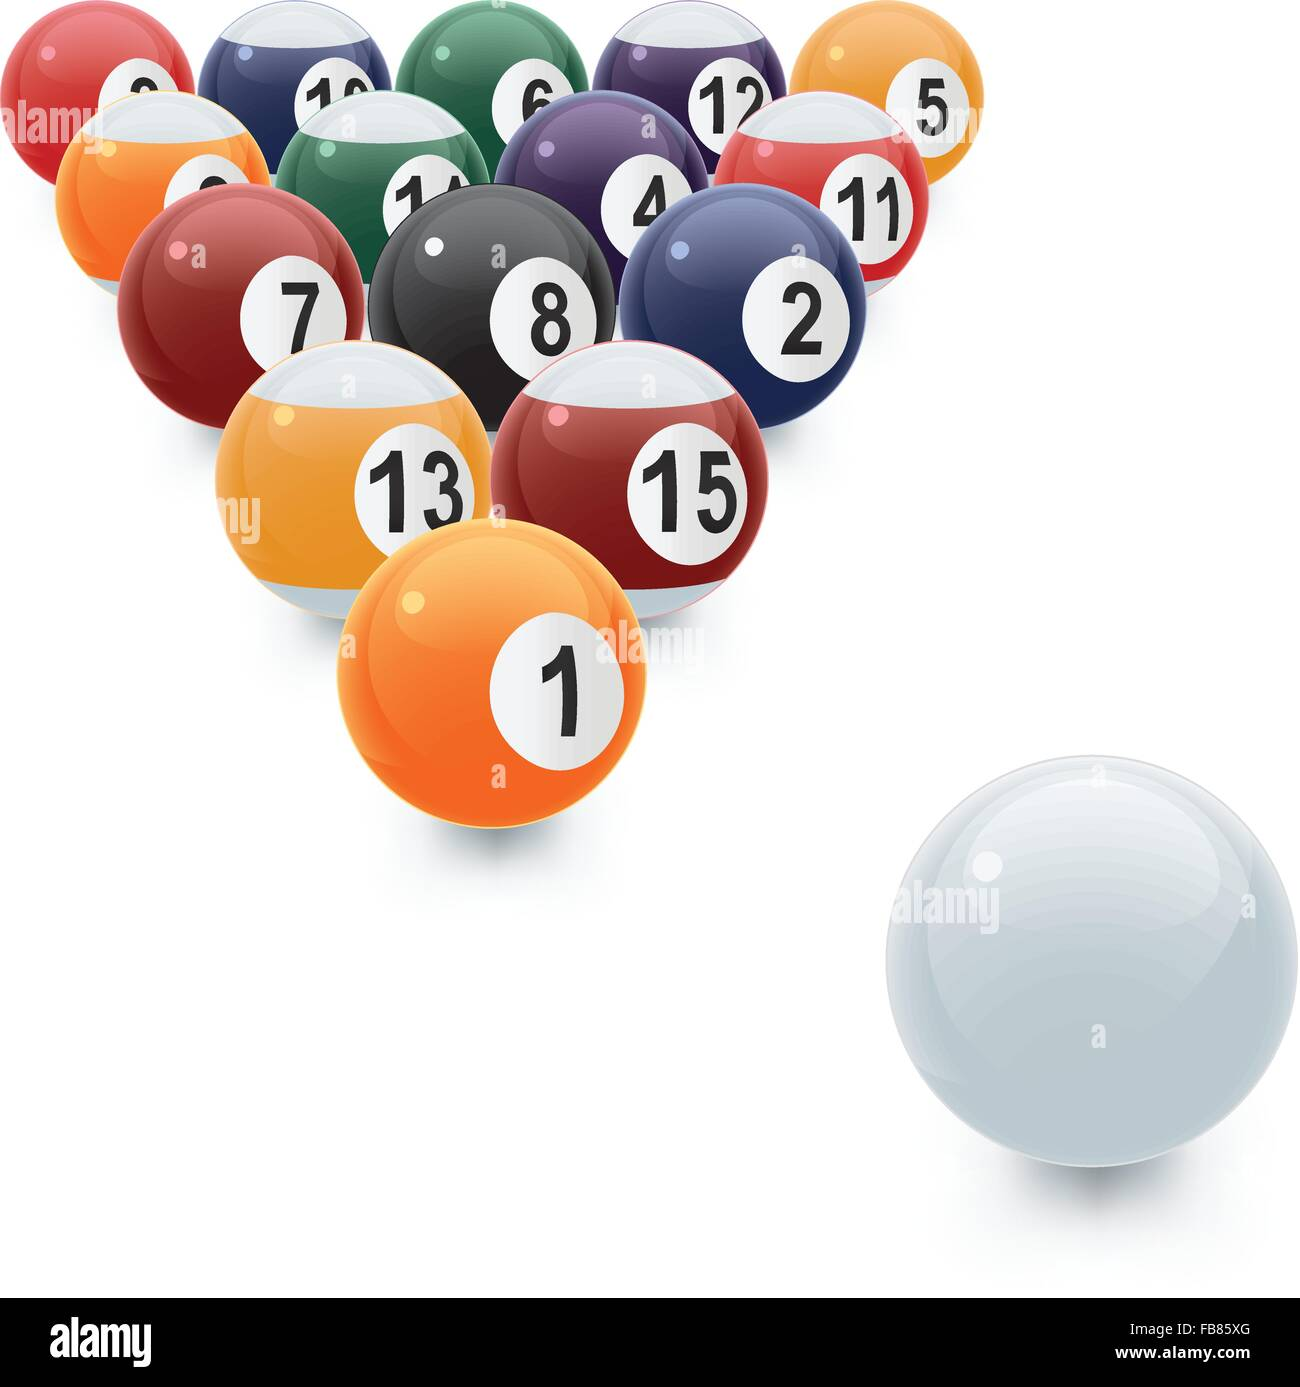 A vector illustration of a glossy set of pool balls in proper perspective with a white cue ball. - Stock Vector